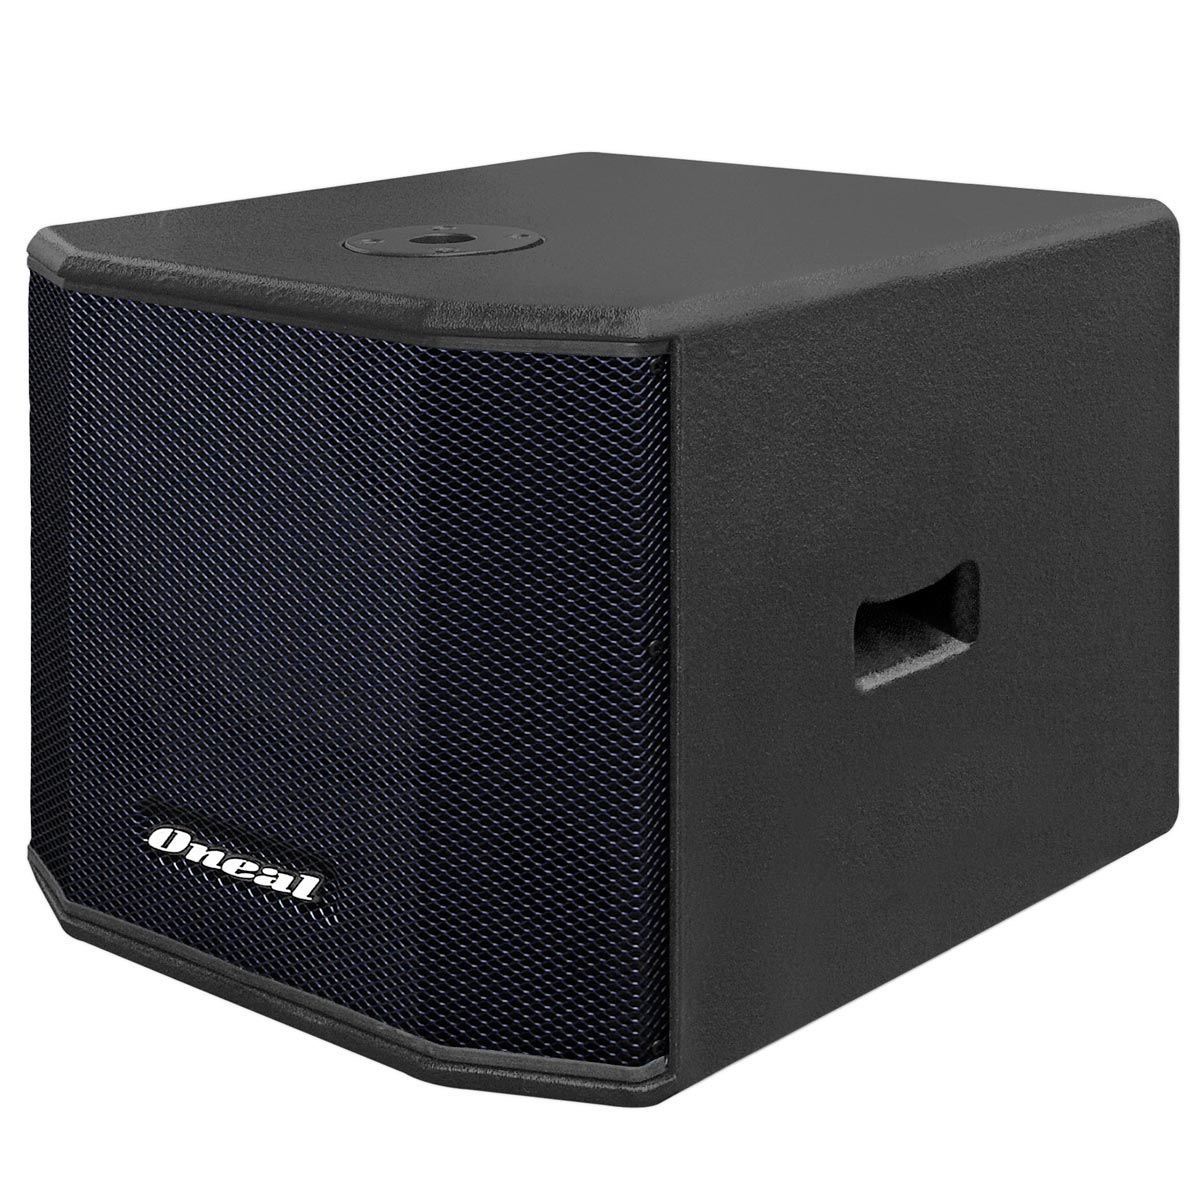 OPSB2200 - Subwoofer Ativo 550W OPSB 2200 - Oneal